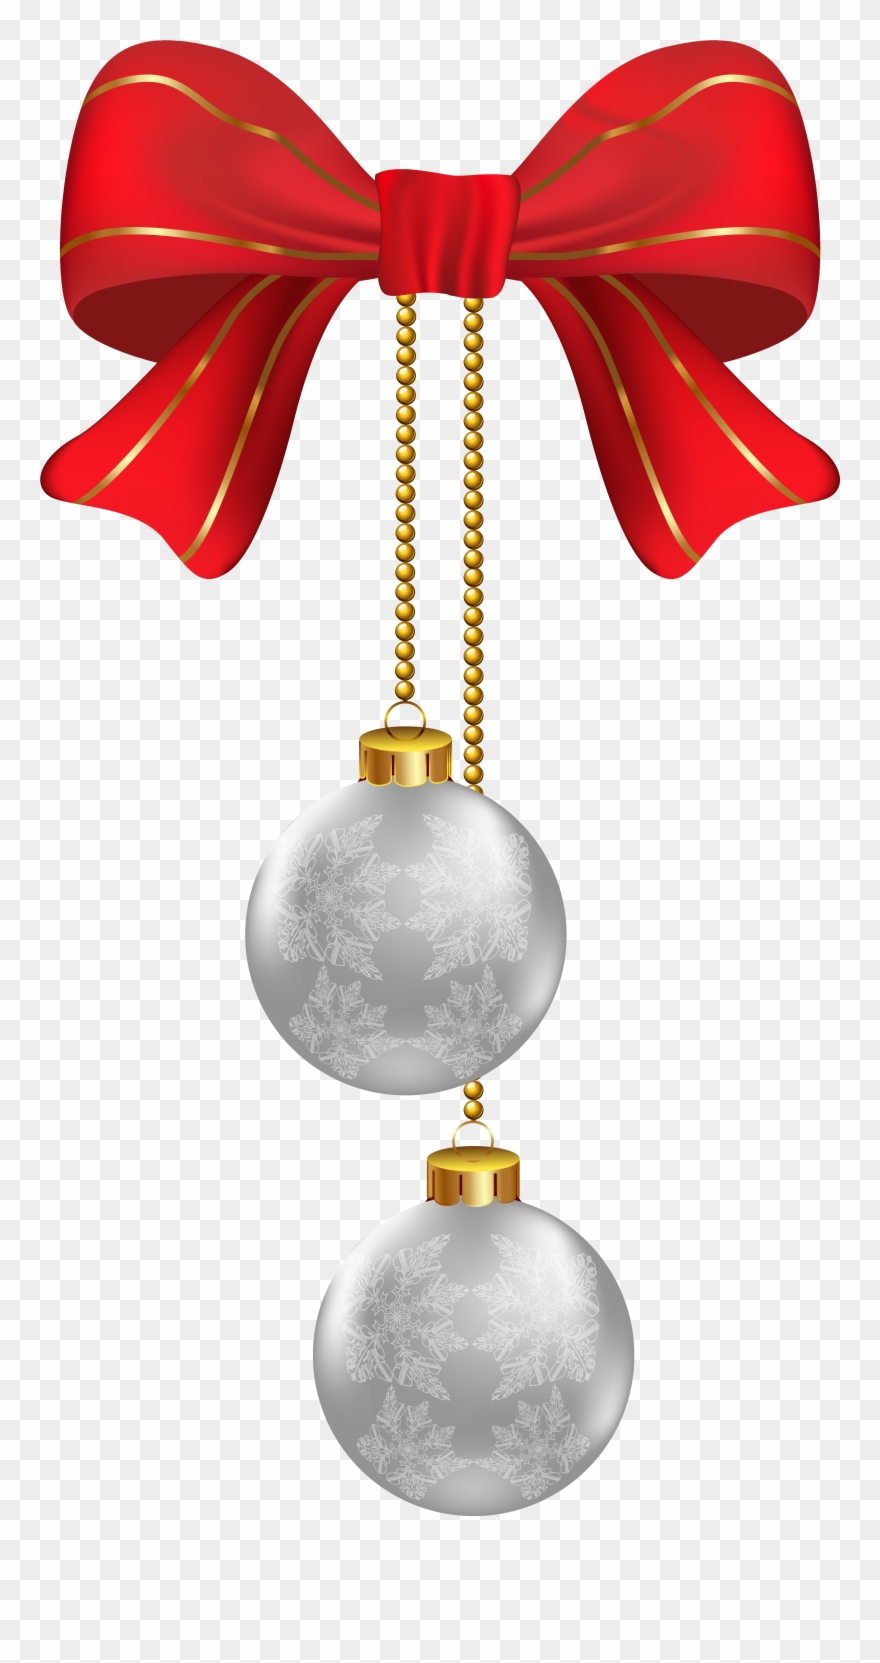 Hanging Christmas Silver Ornaments Png Clipart Image